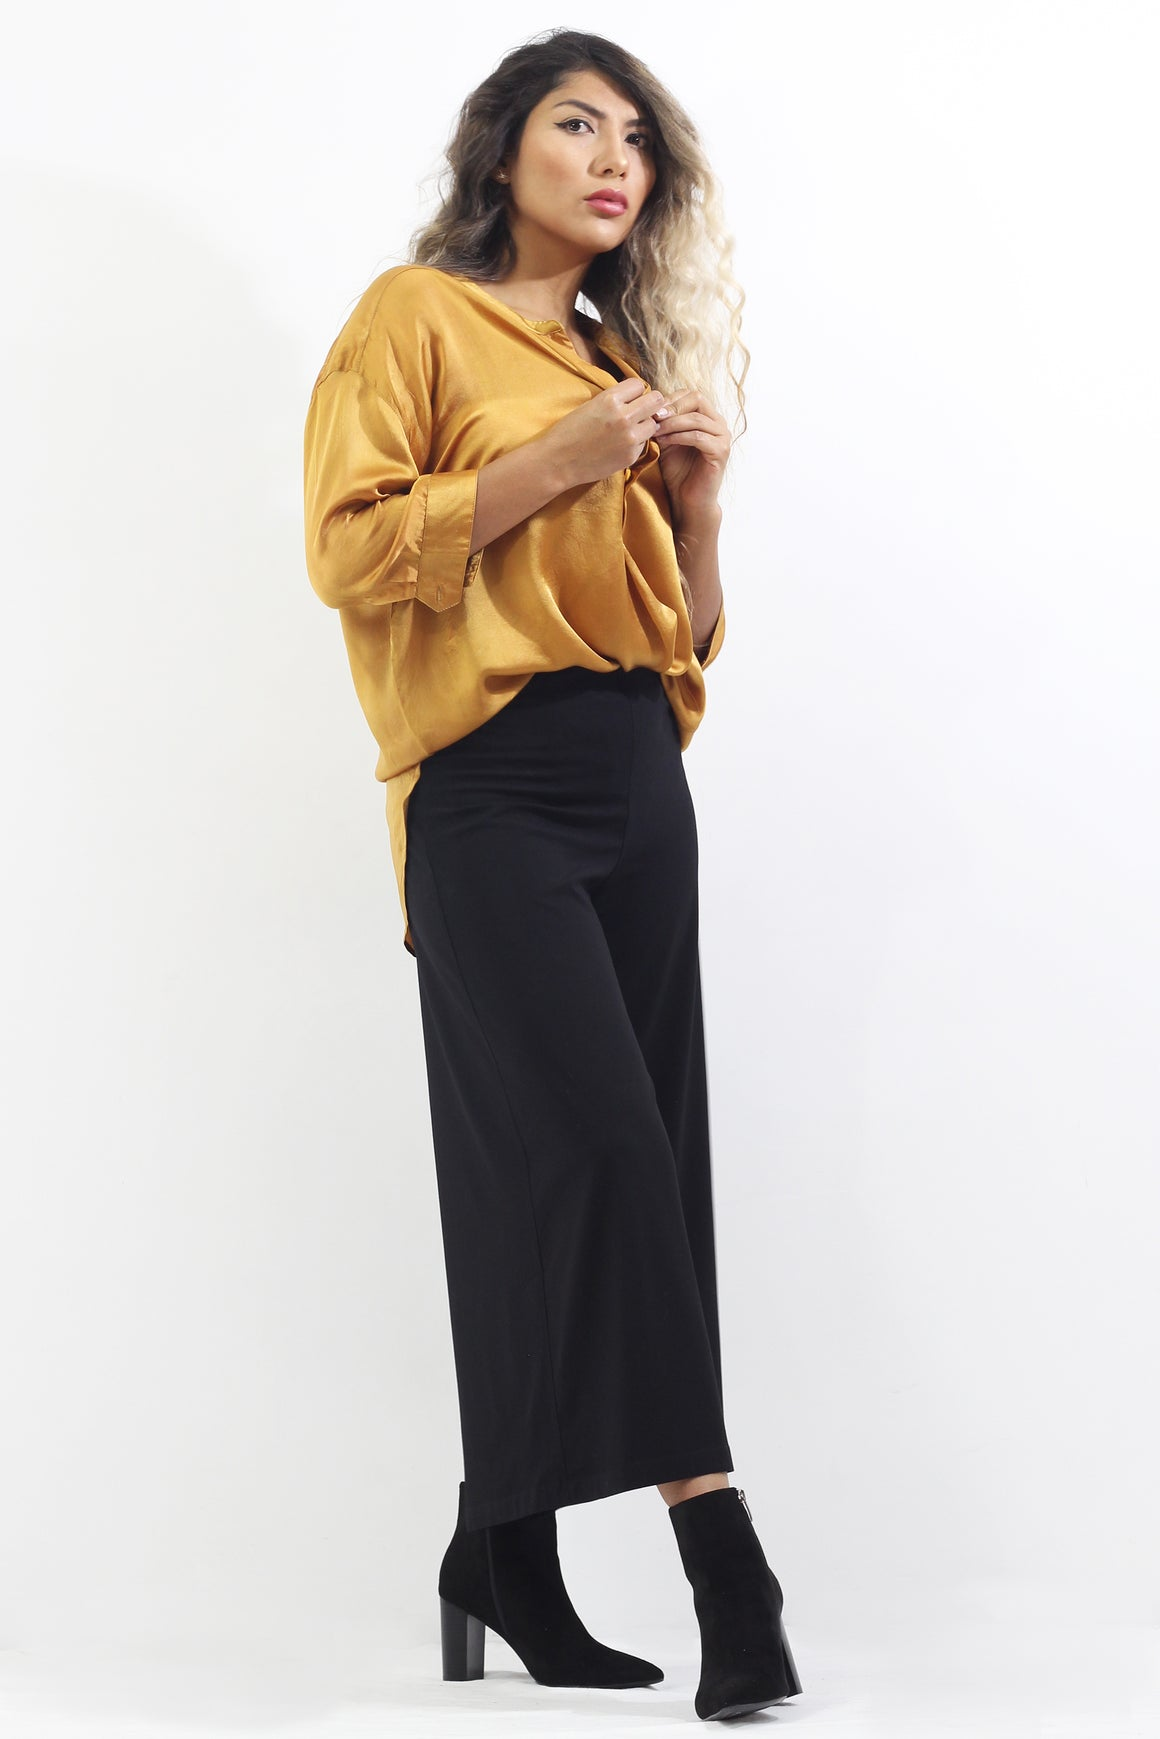 Soie- Silk Blouse or Palazzo Crops- Separates